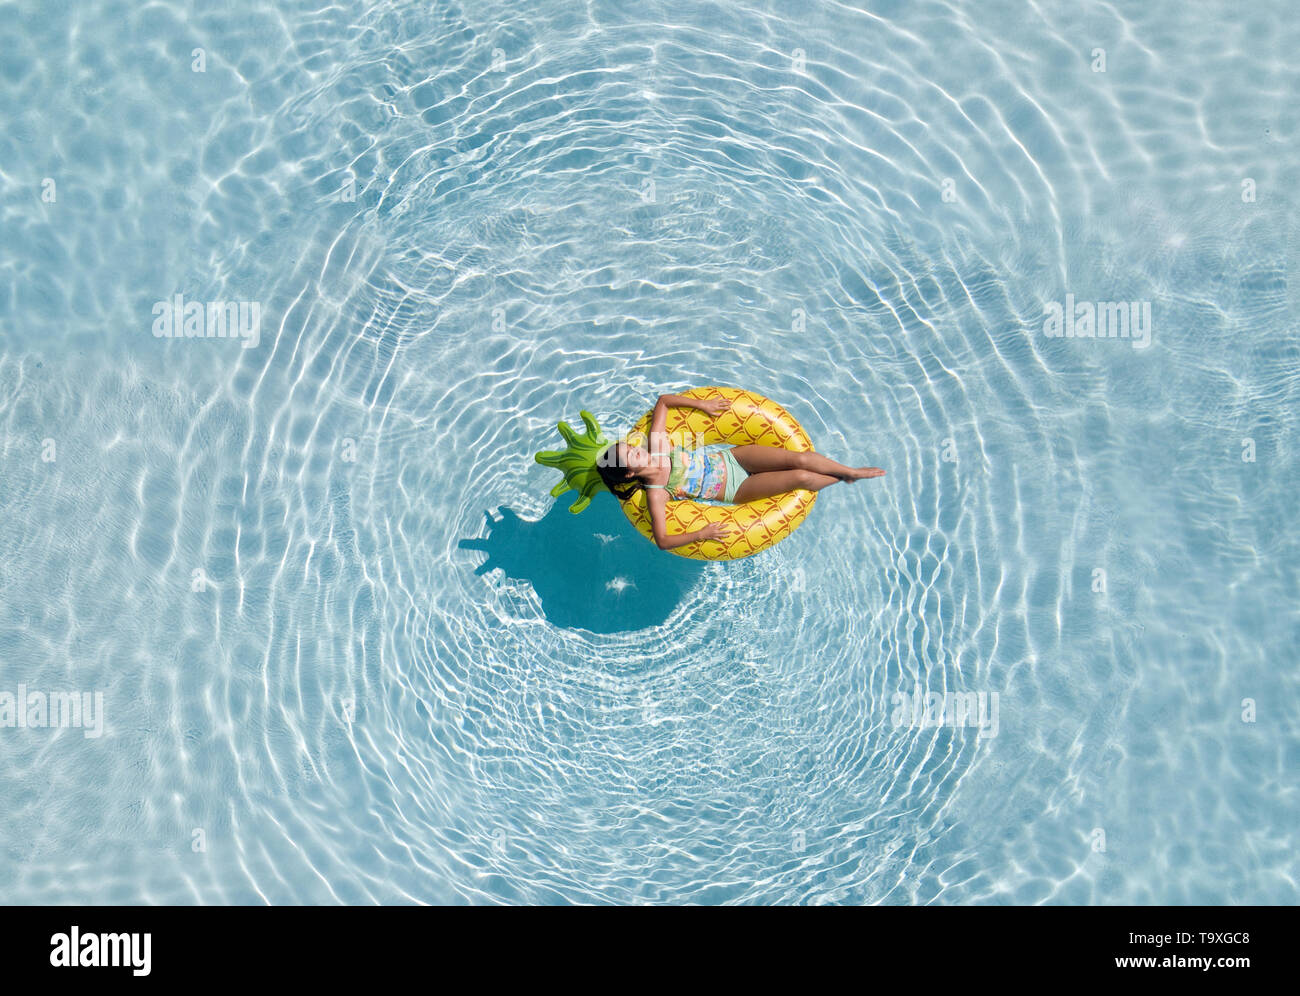 A drone aerial shot of a teenage girl relaxing on a pineapple shaped pool floaty in a swimming pool - Stock Image